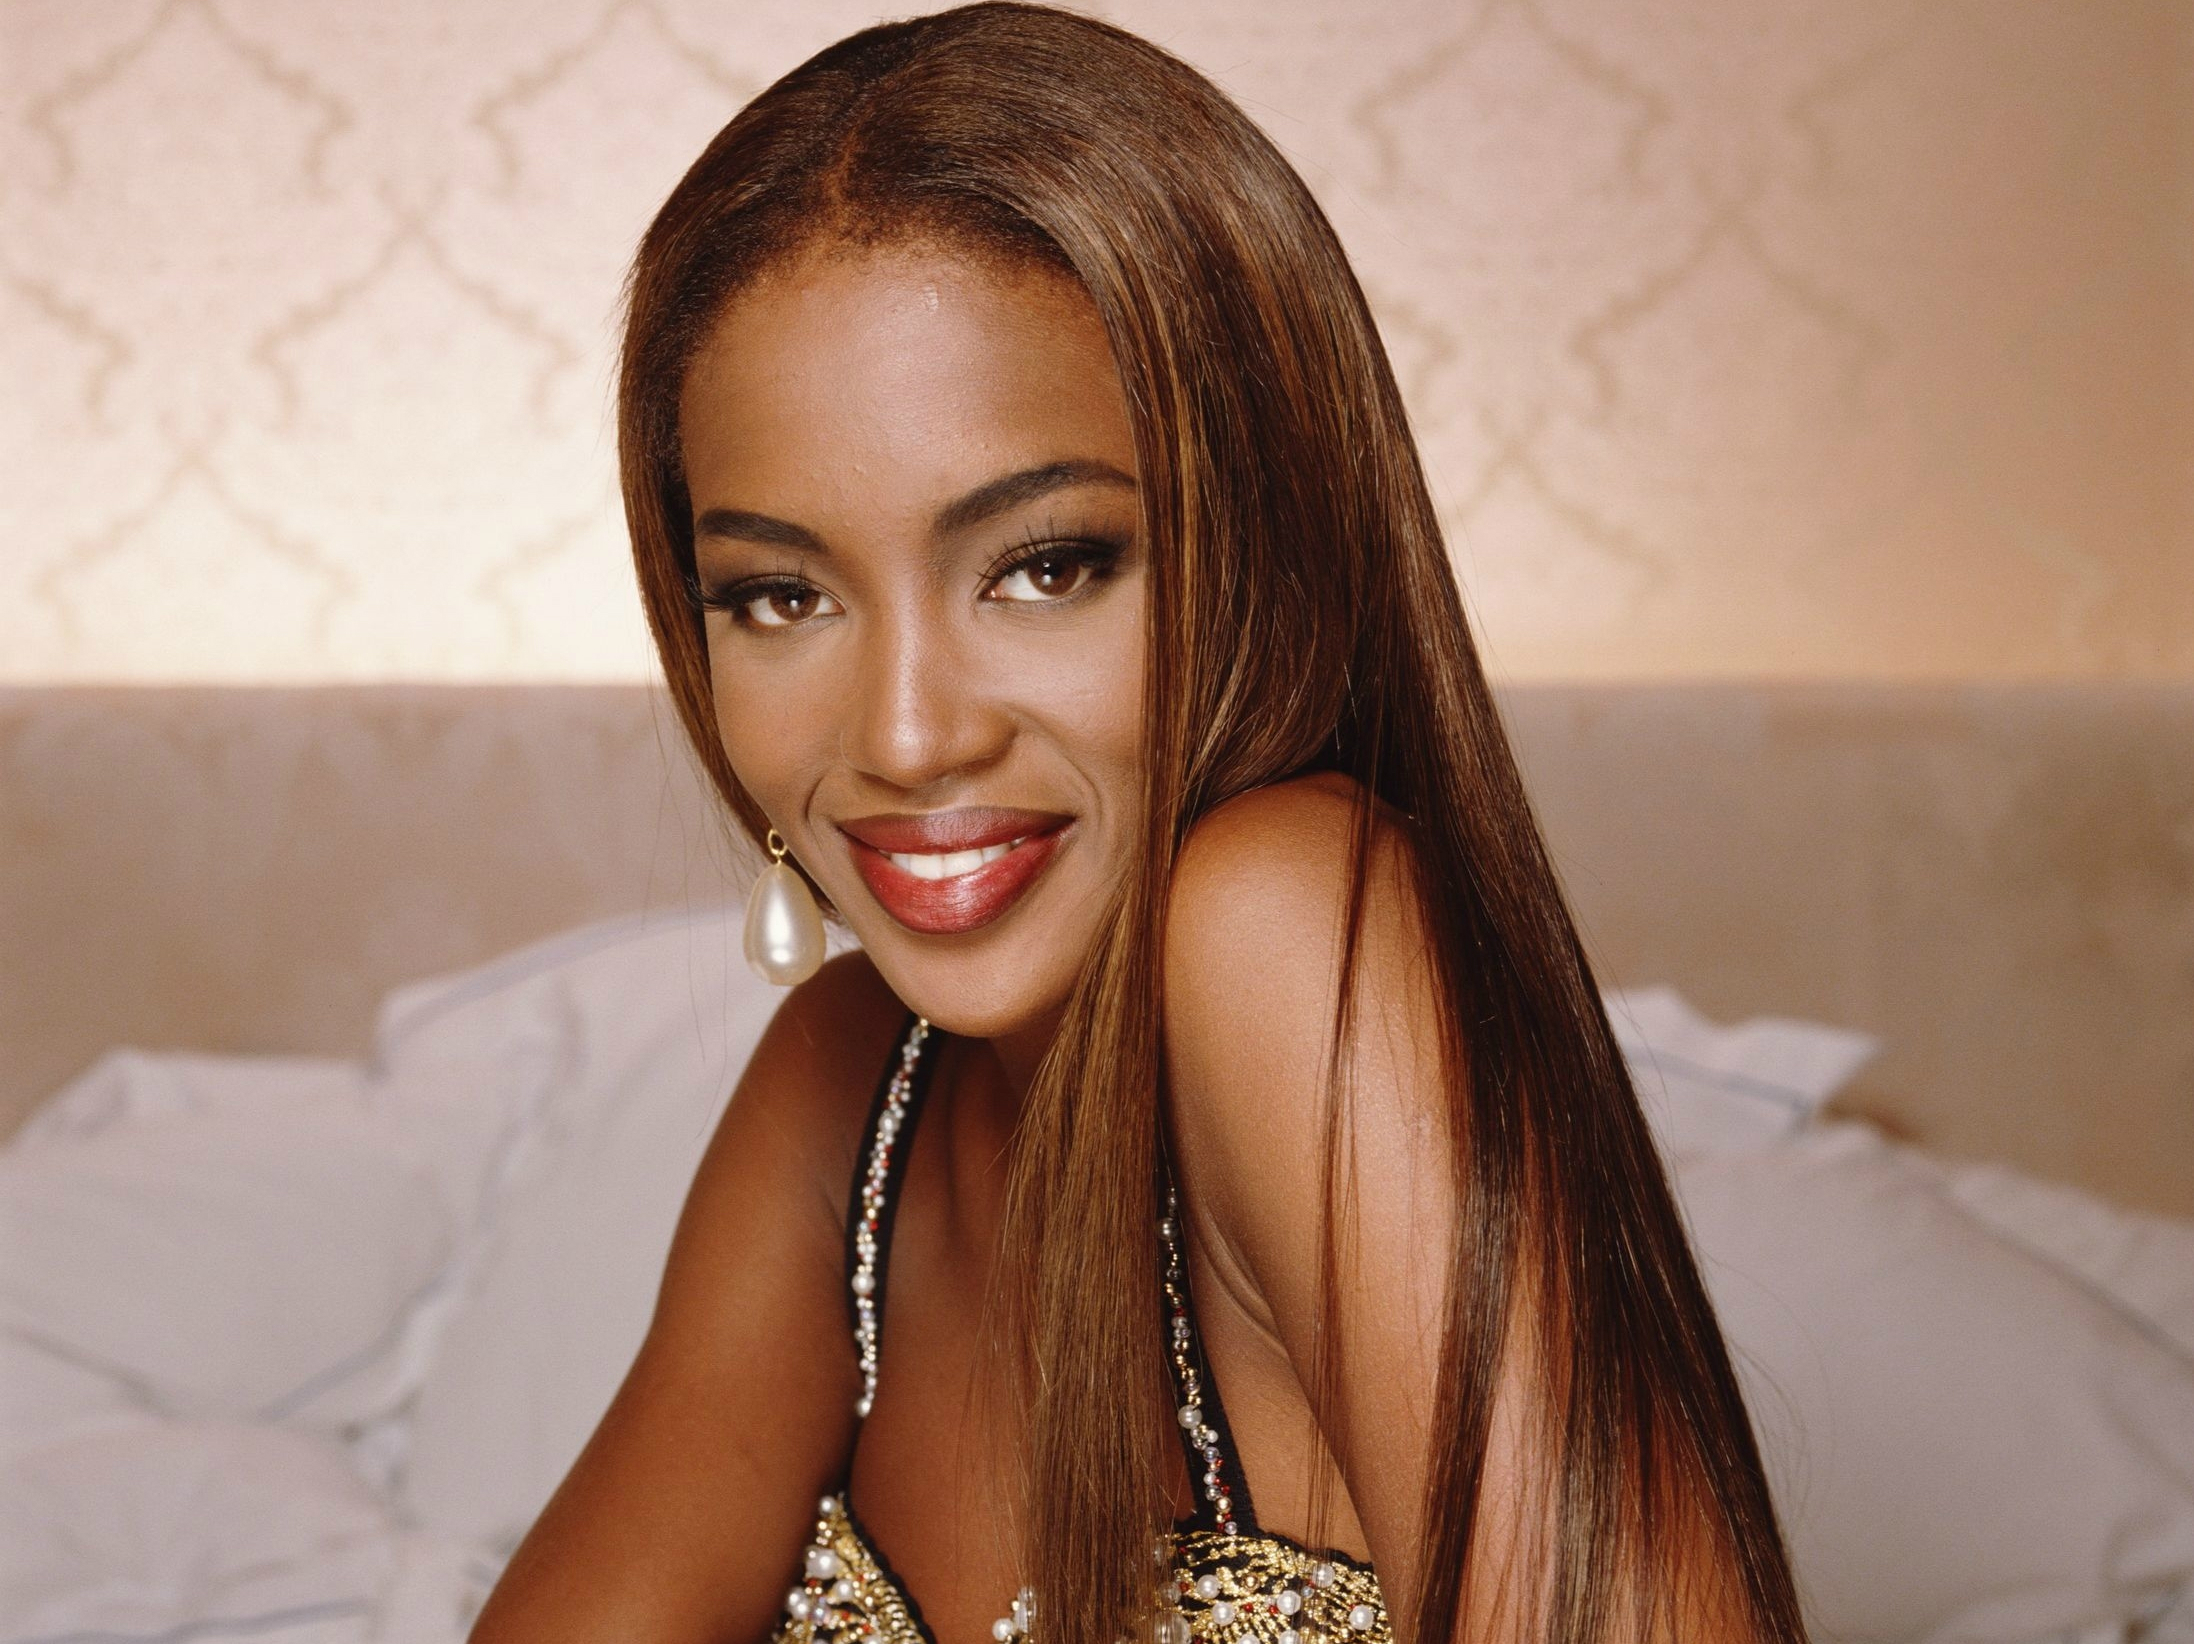 naomi campbell smile wallpaper 56957